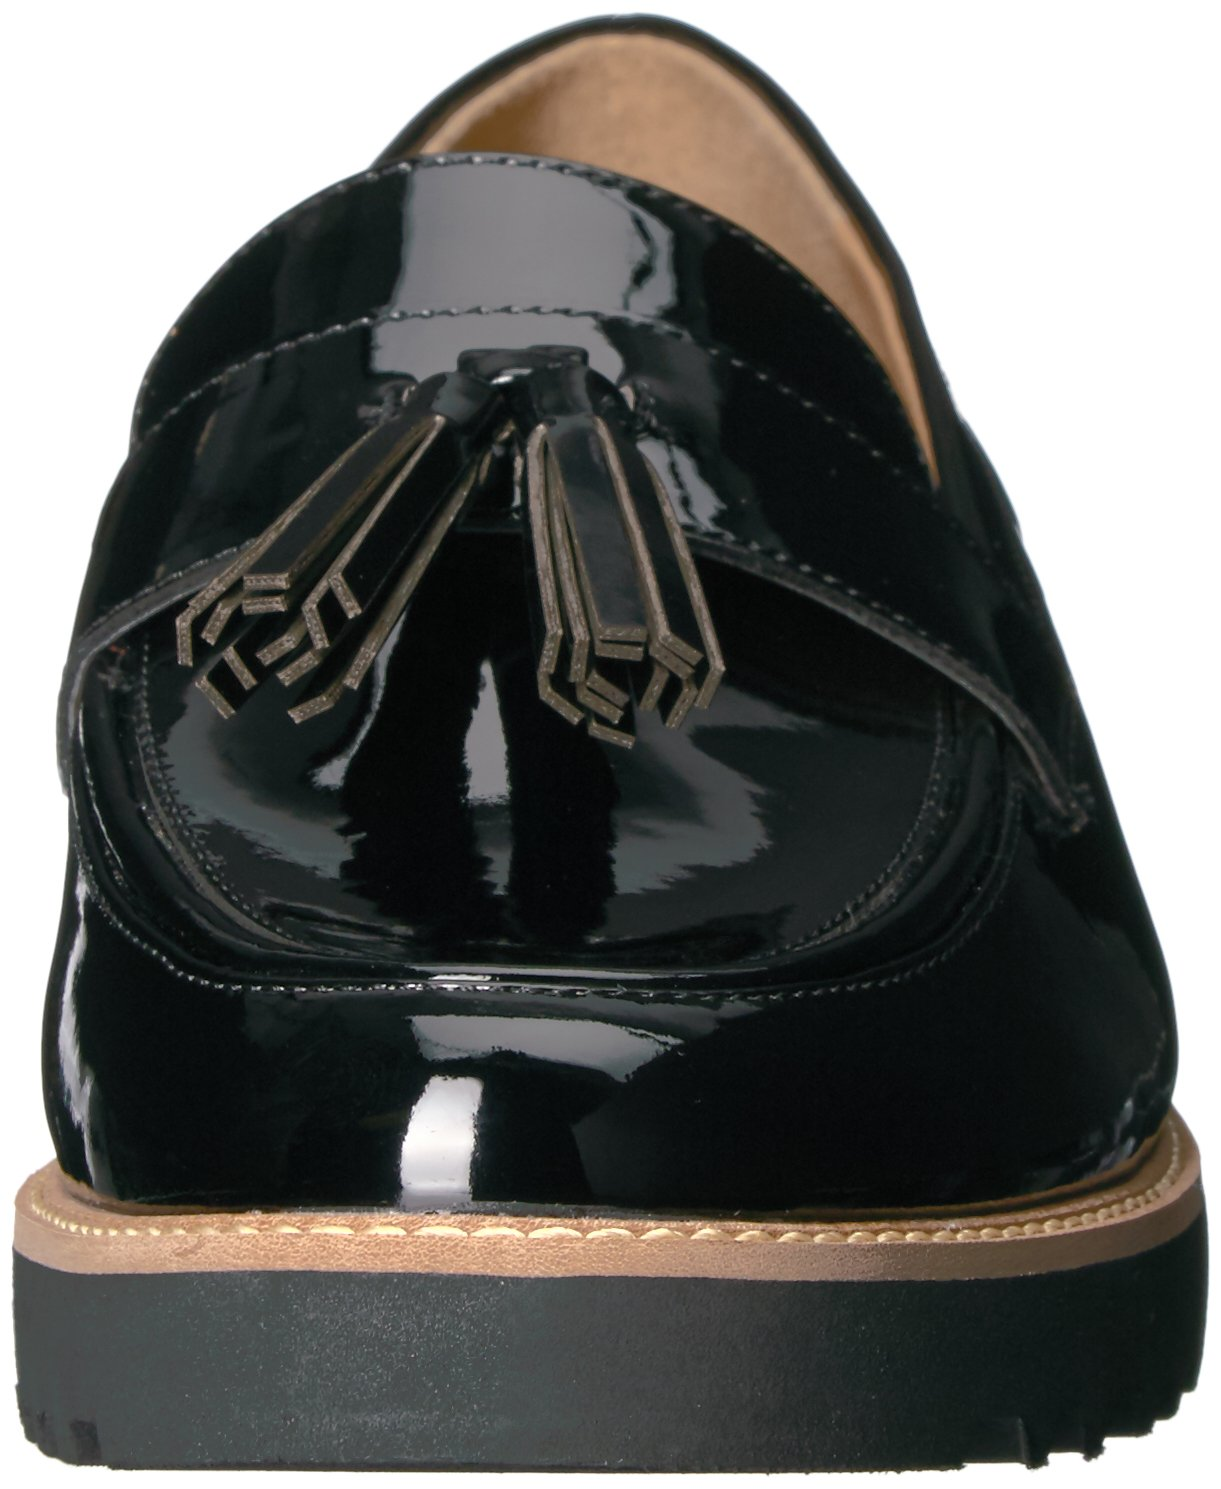 Franco Sarto Women's Carolynn Loafer Flat, Black, 9 M US by Franco Sarto (Image #4)